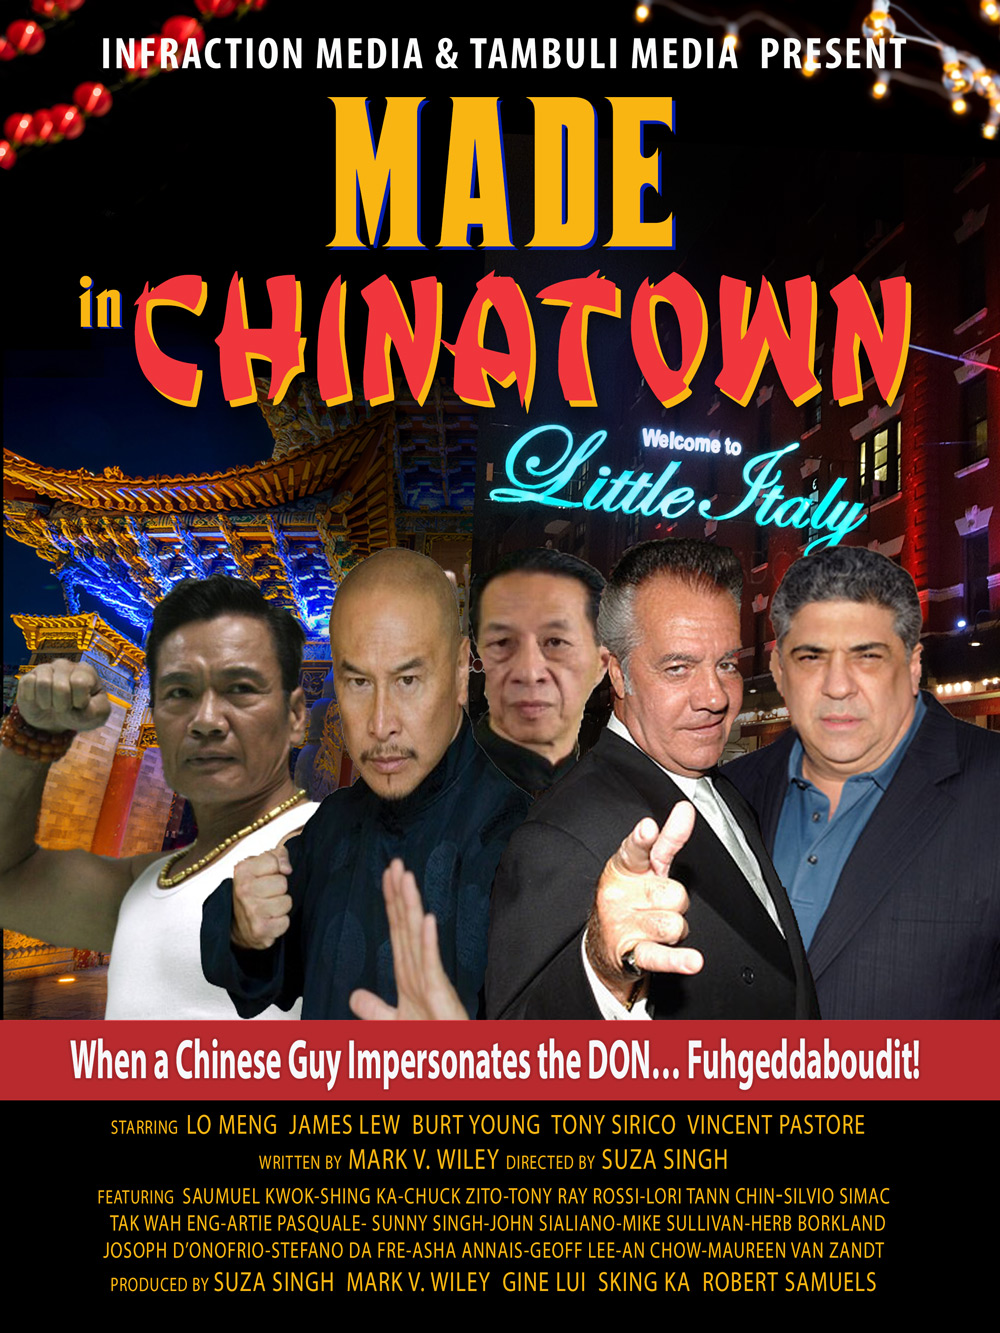 Made-in-Chinatown-Poster-6-Kwok-(Canne)